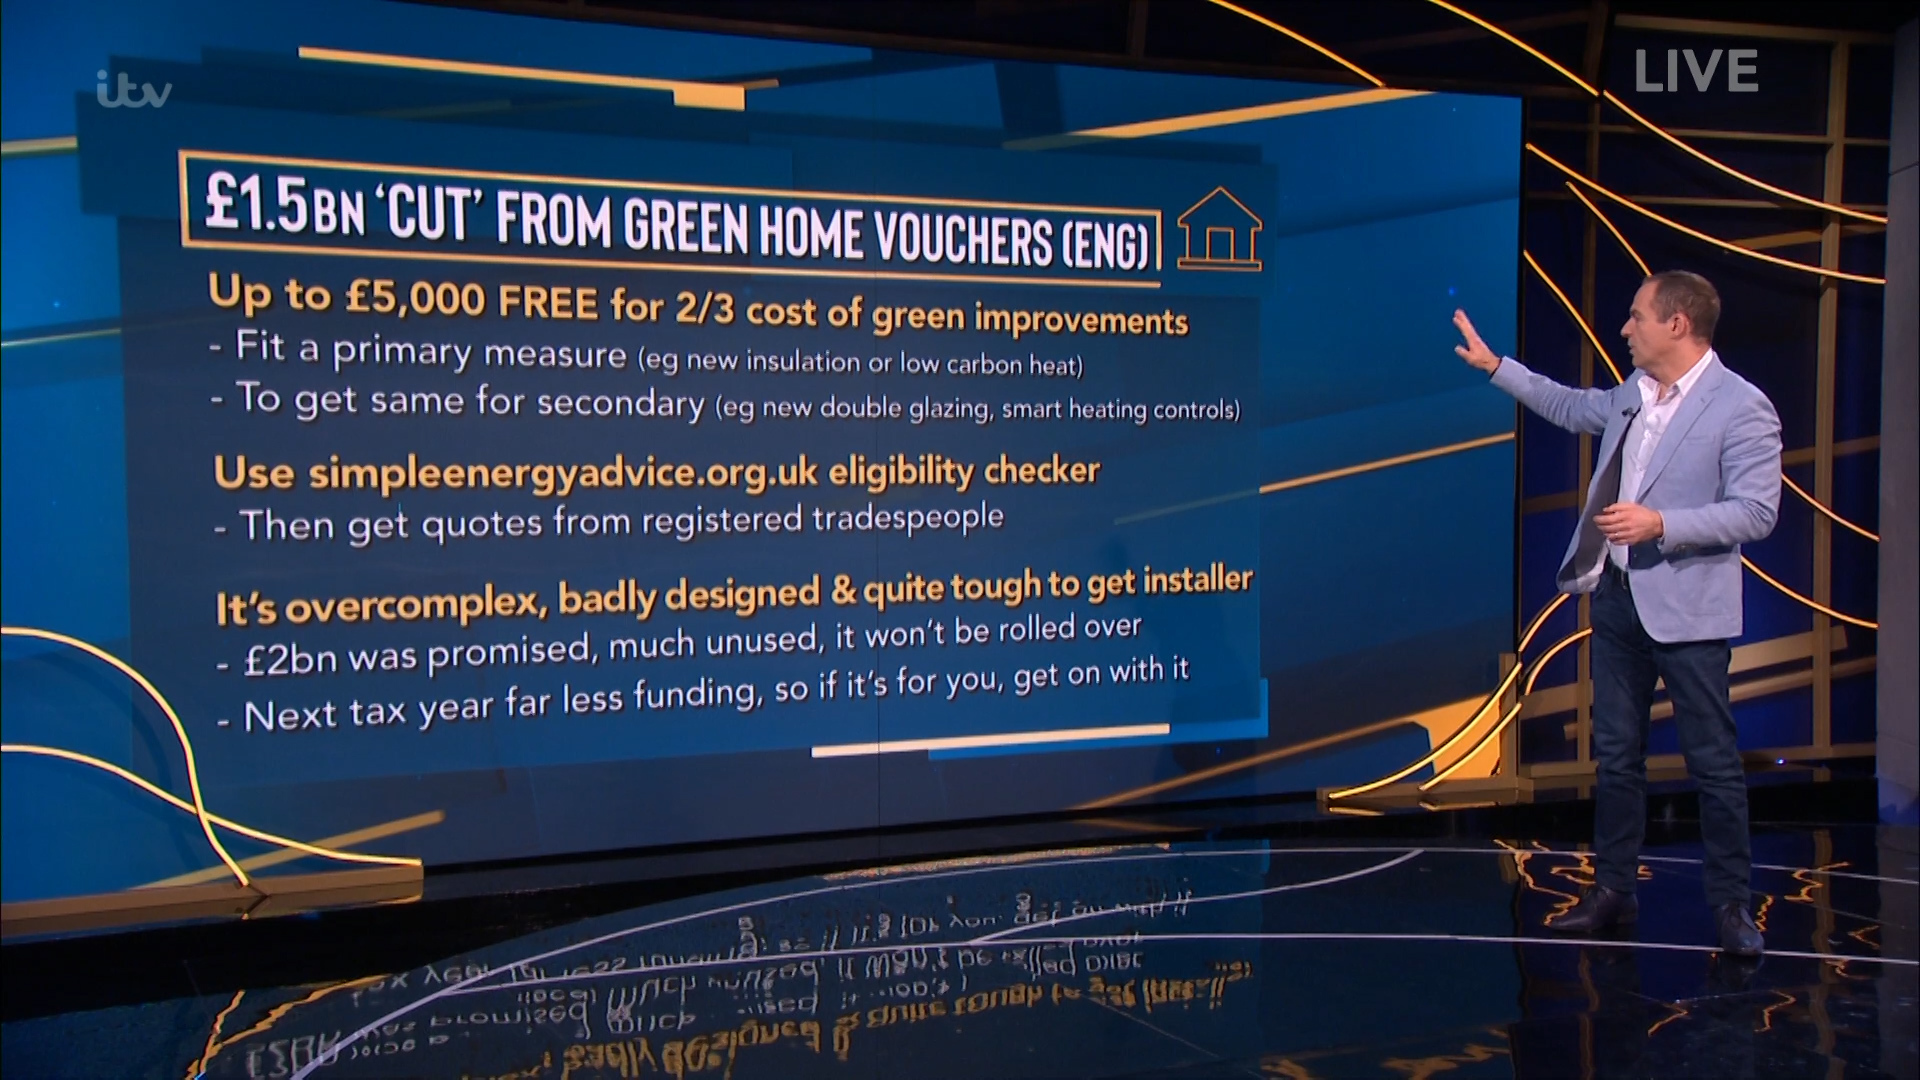 """Martin urged Brits wanting to apply to the scheme to """"get on with it"""" before money is slashed from the Green Homes Scheme budget"""